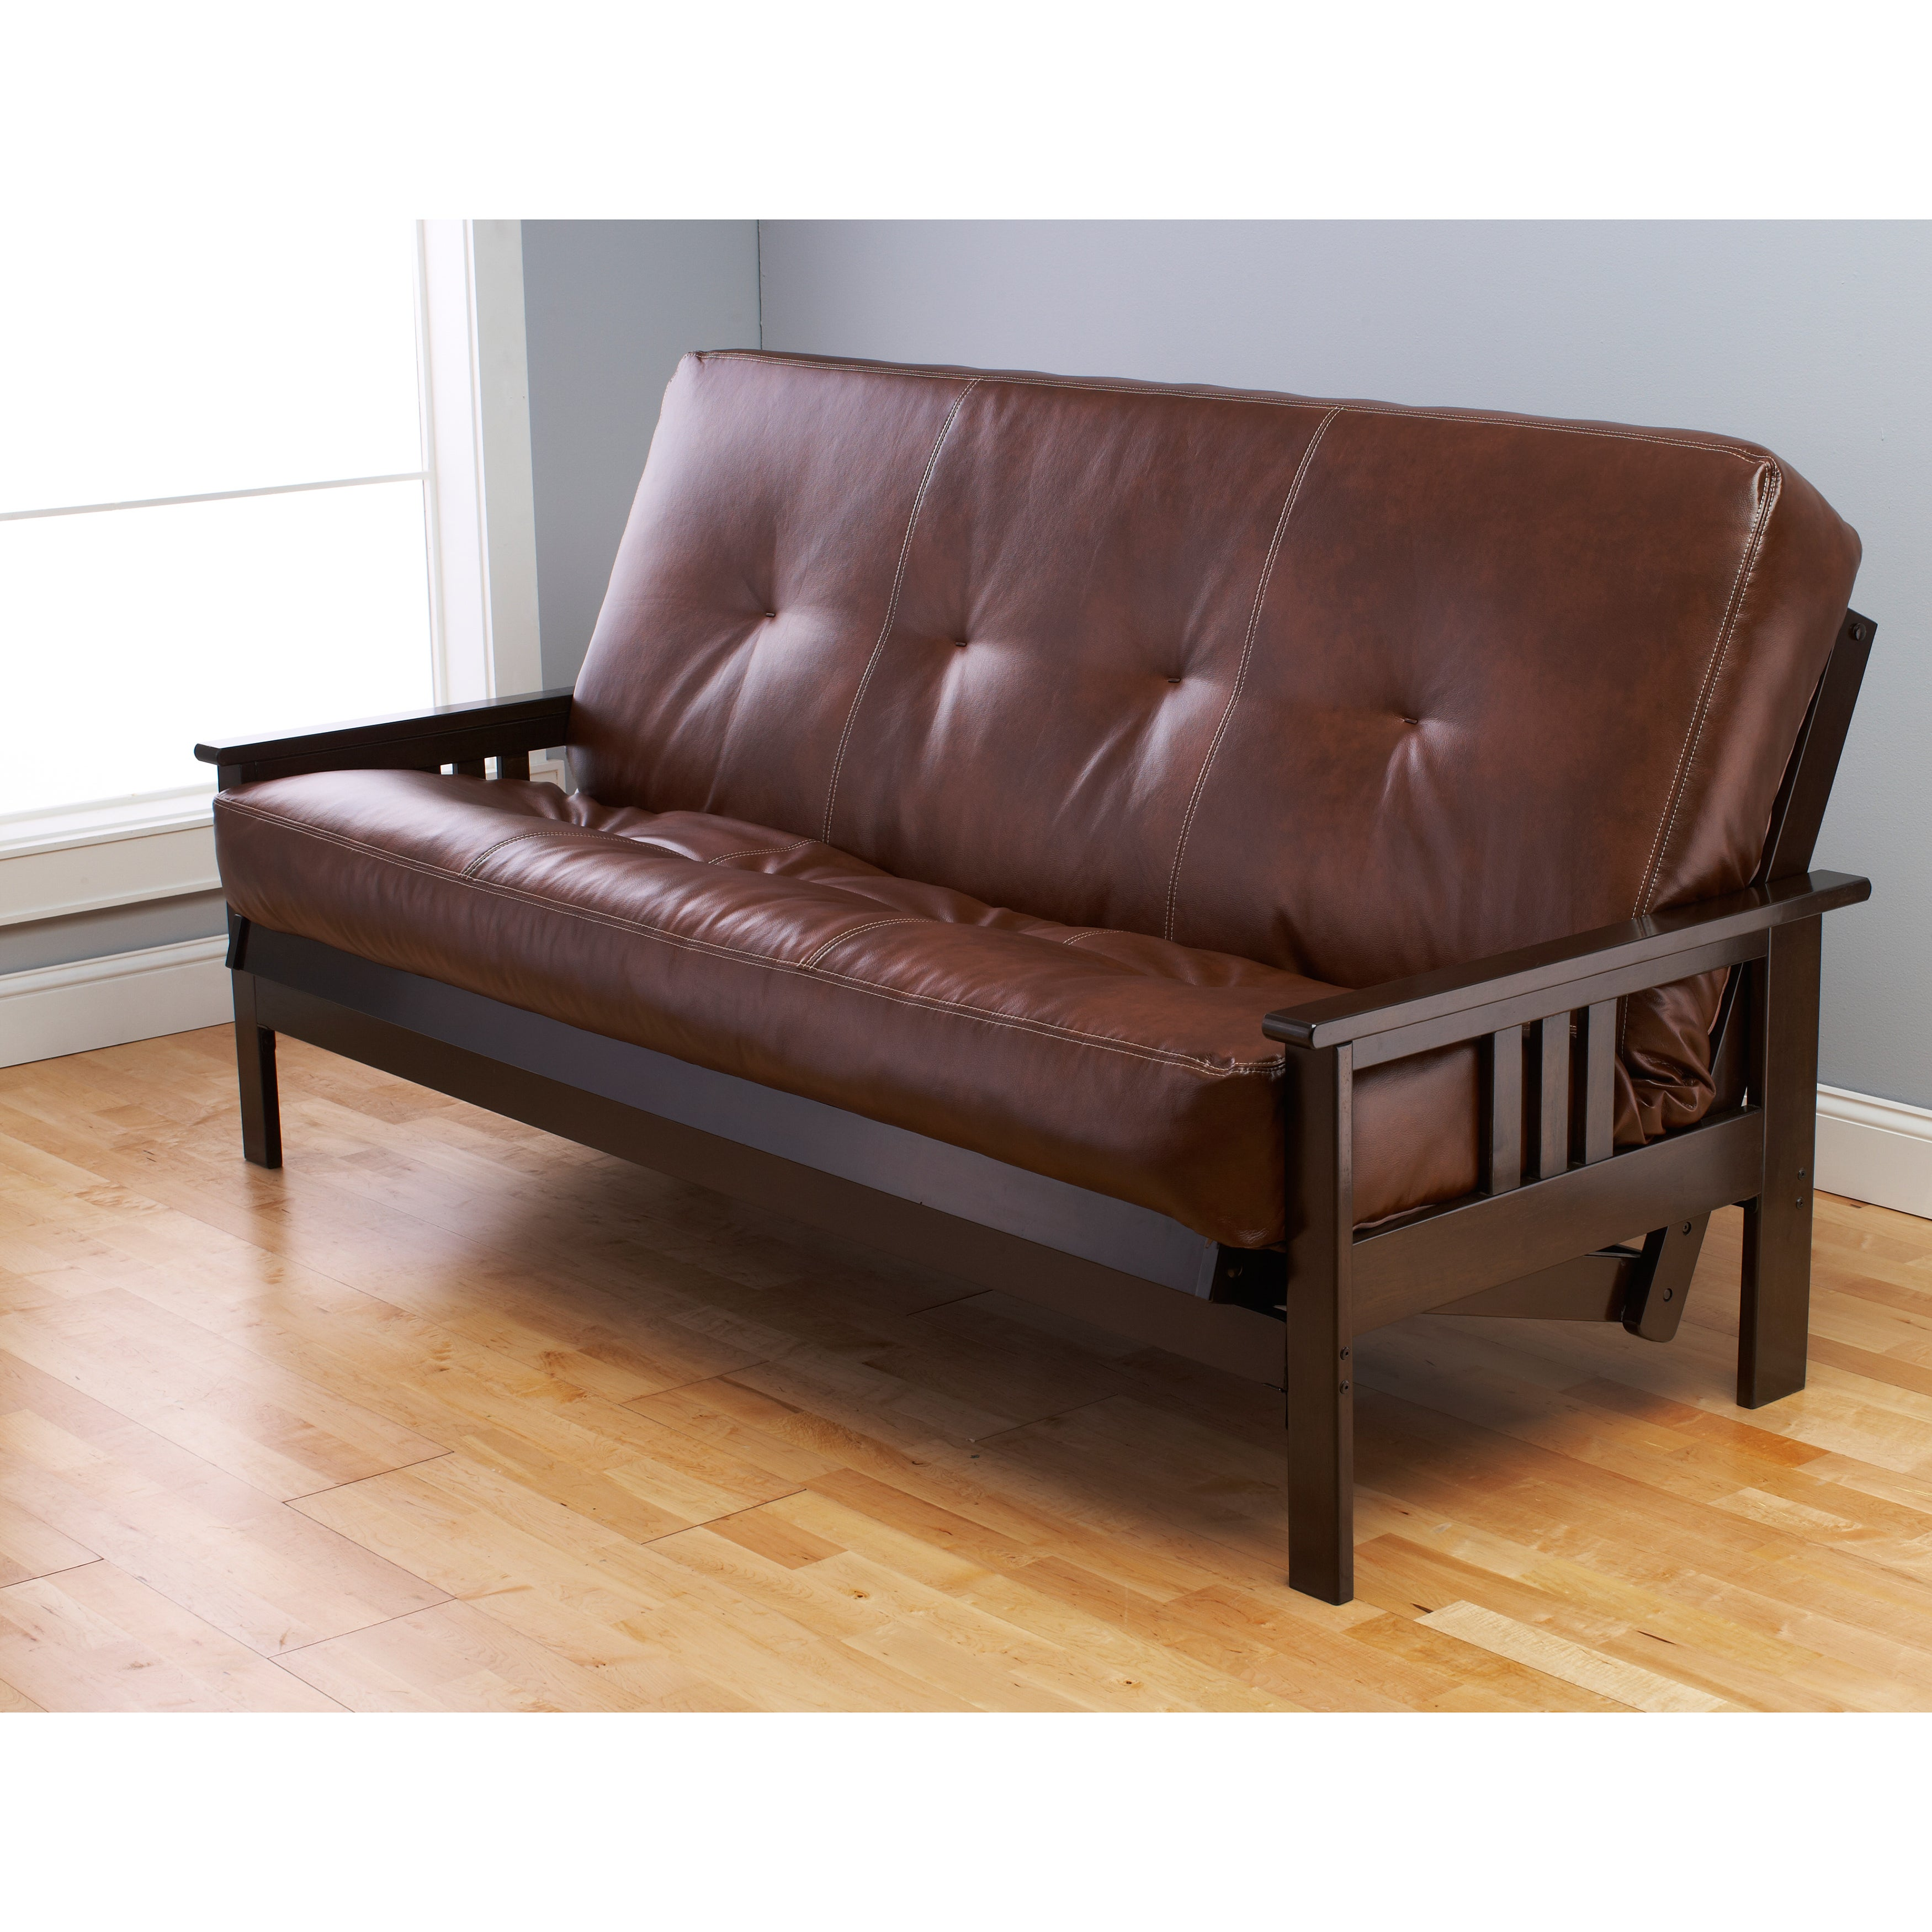 Bonded Leather Beli Mont Multi-Flex Espresso Futon Frame and Mattress Set at Sears.com